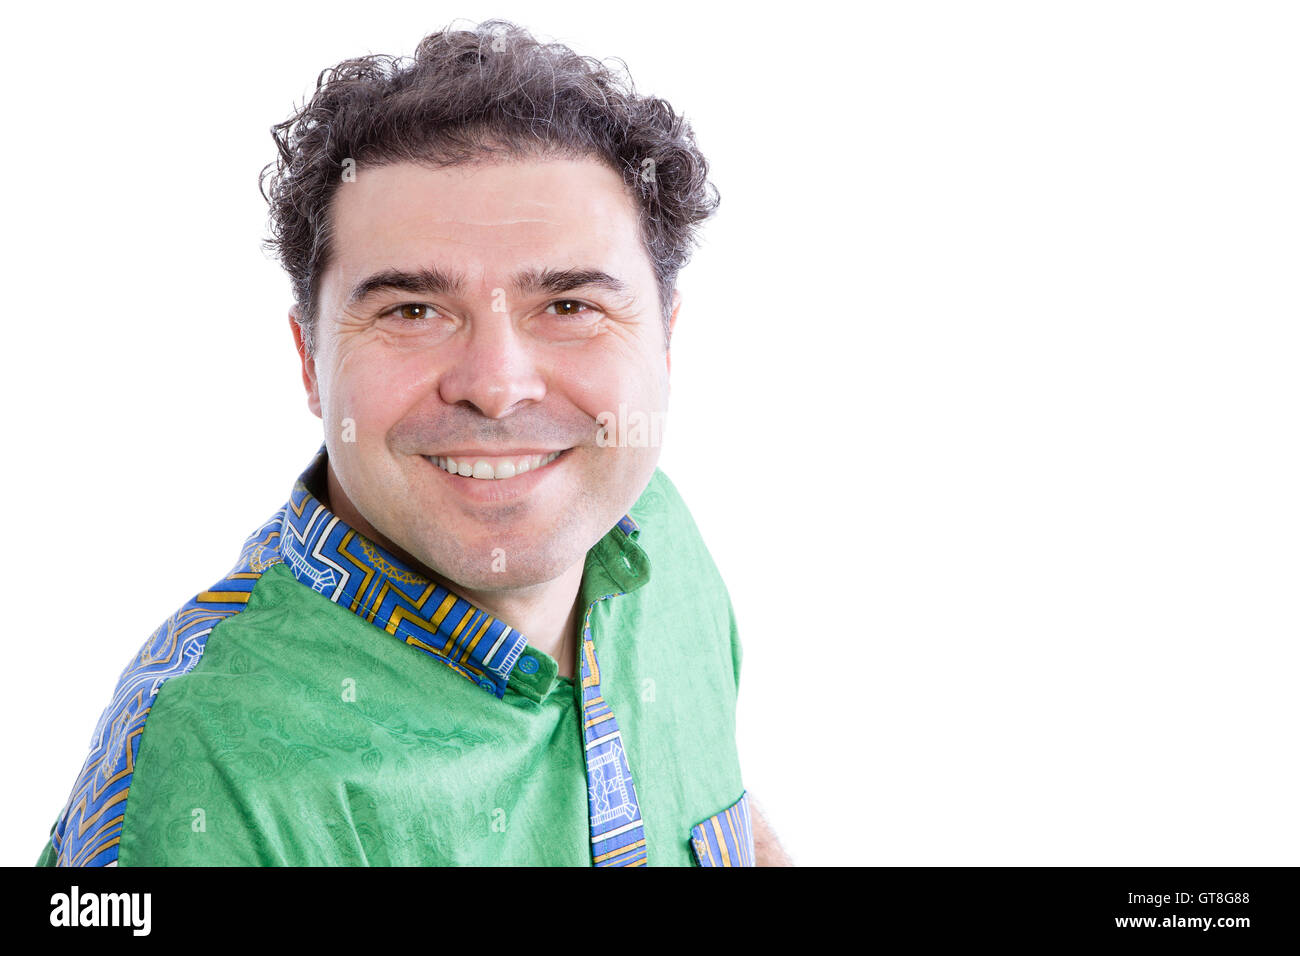 Handsome happy genuine middle-aged man leaning towards the camera with a warm friendly smile, head and shoulders - Stock Image